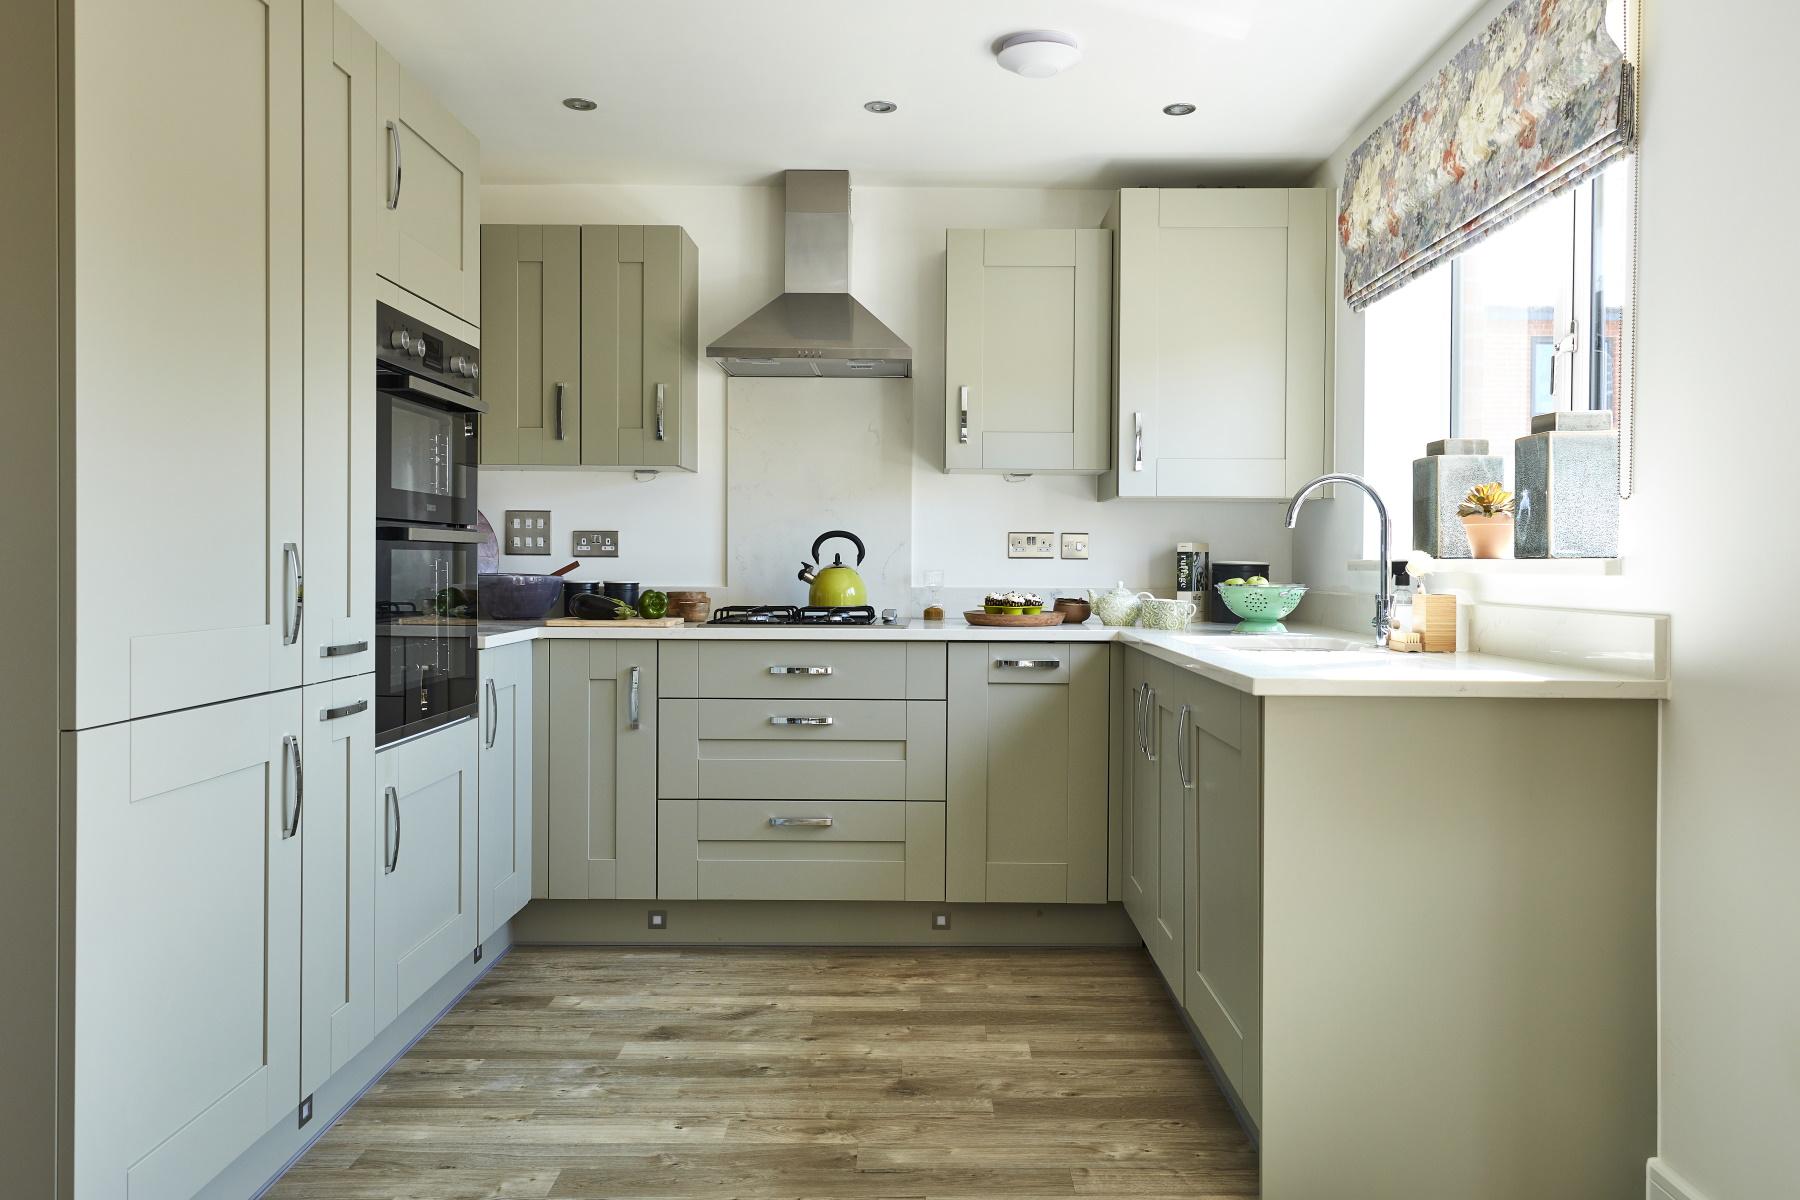 TW Exeter - Mayfield Gardens - Byford example kitchen